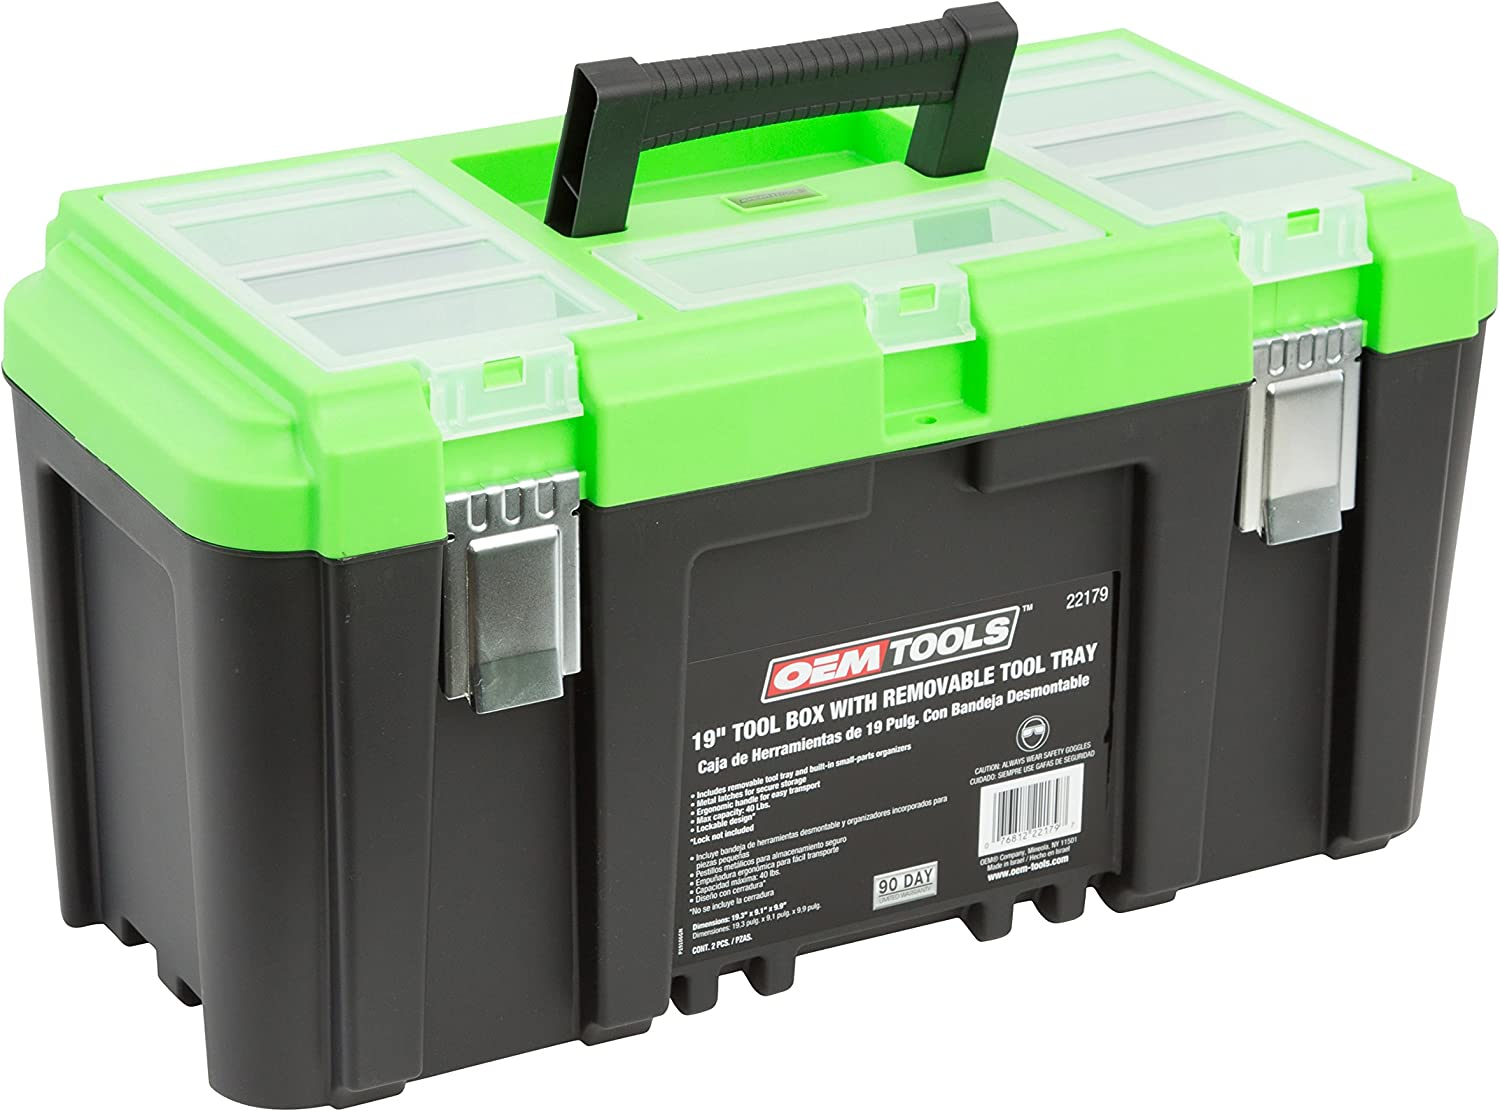 """19"""" Tool Box with Removable Tool Tray"""